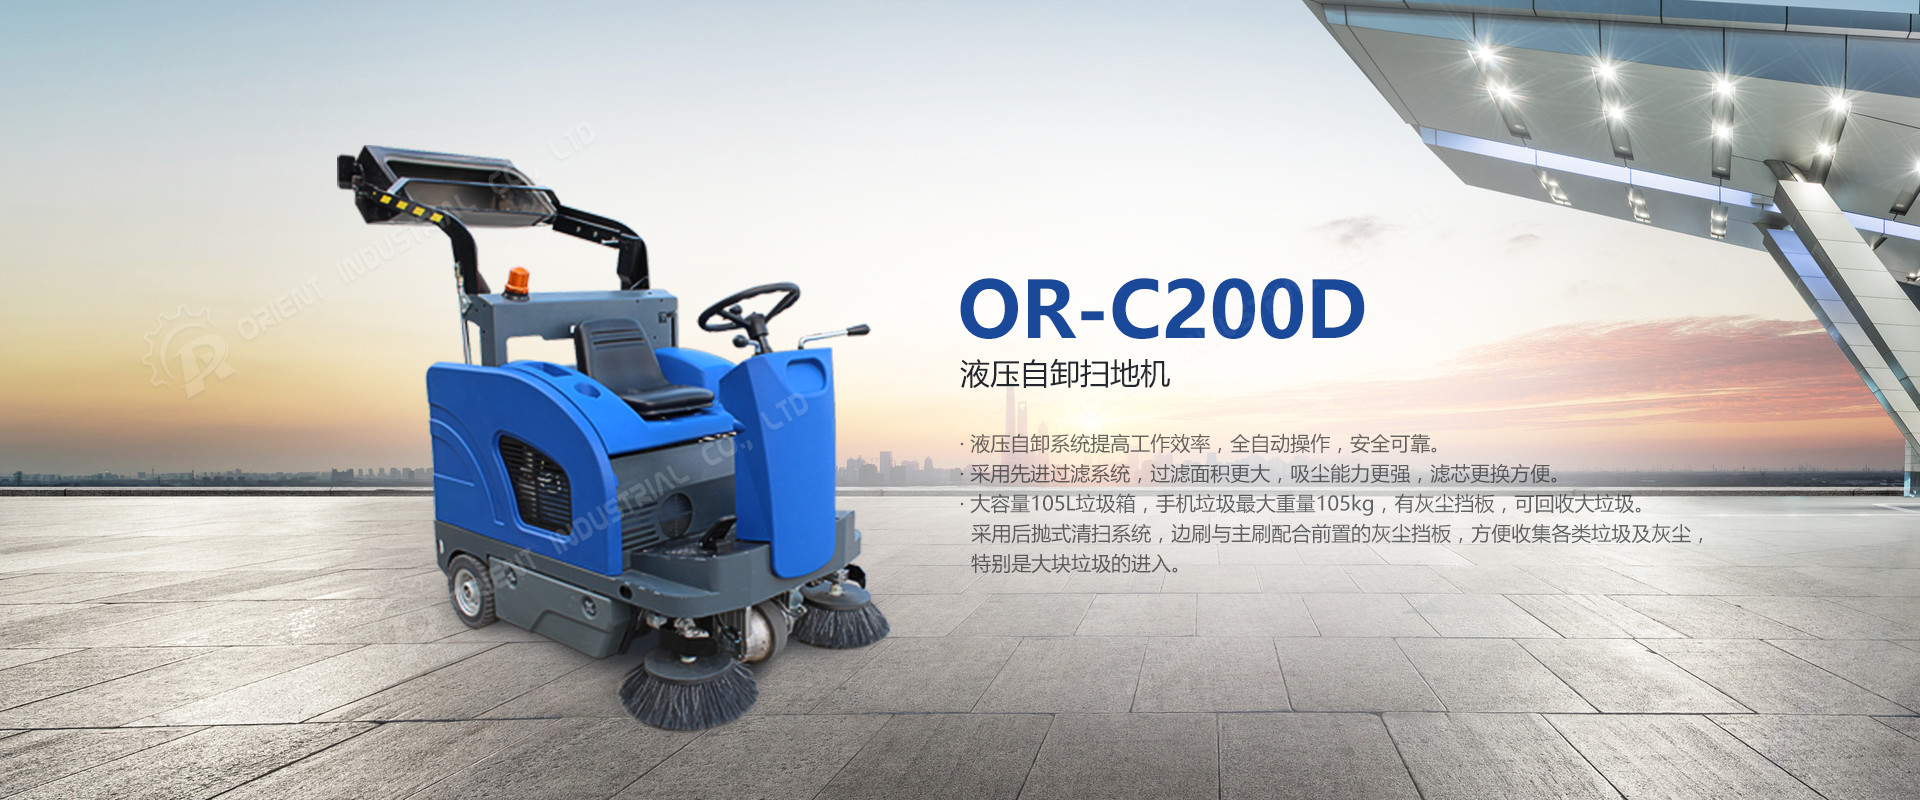 C200D Self-Discharging Electric Cleaning Machine